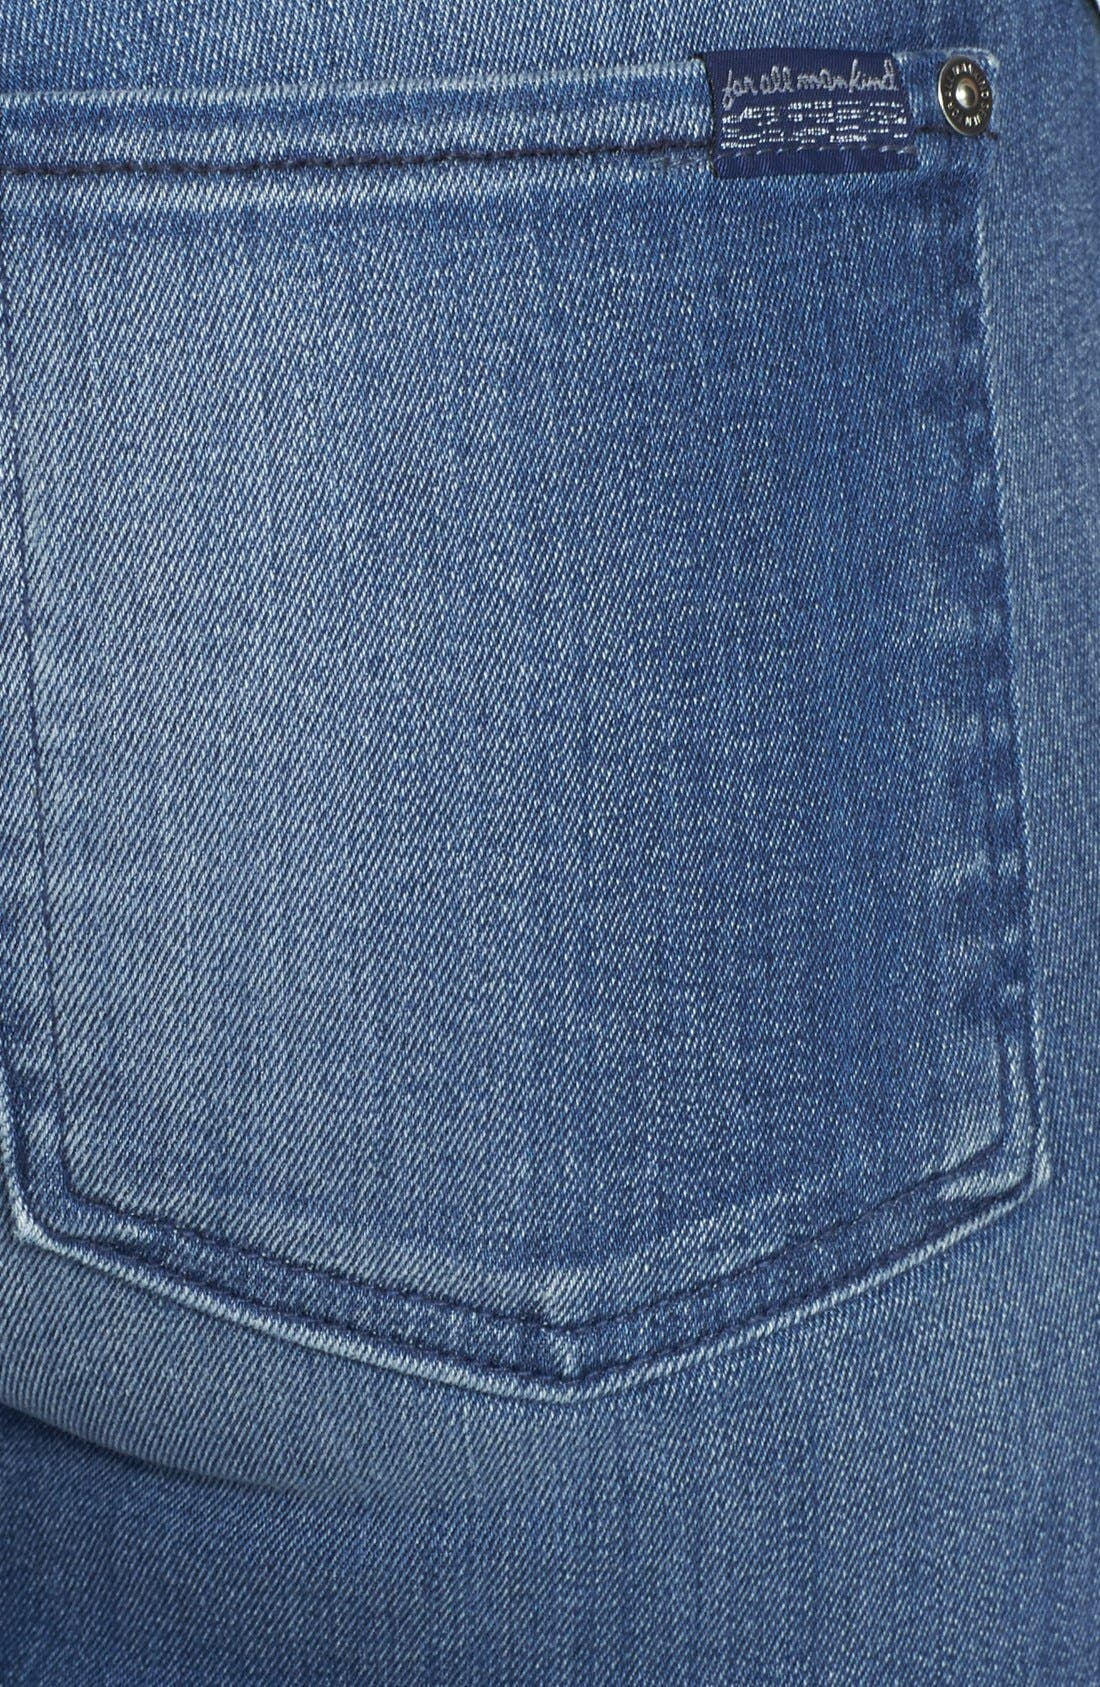 Alternate Image 3  - 7 For All Mankind® 'The Ankle' Skinny Jeans (Slim Illusion Bright Blue)